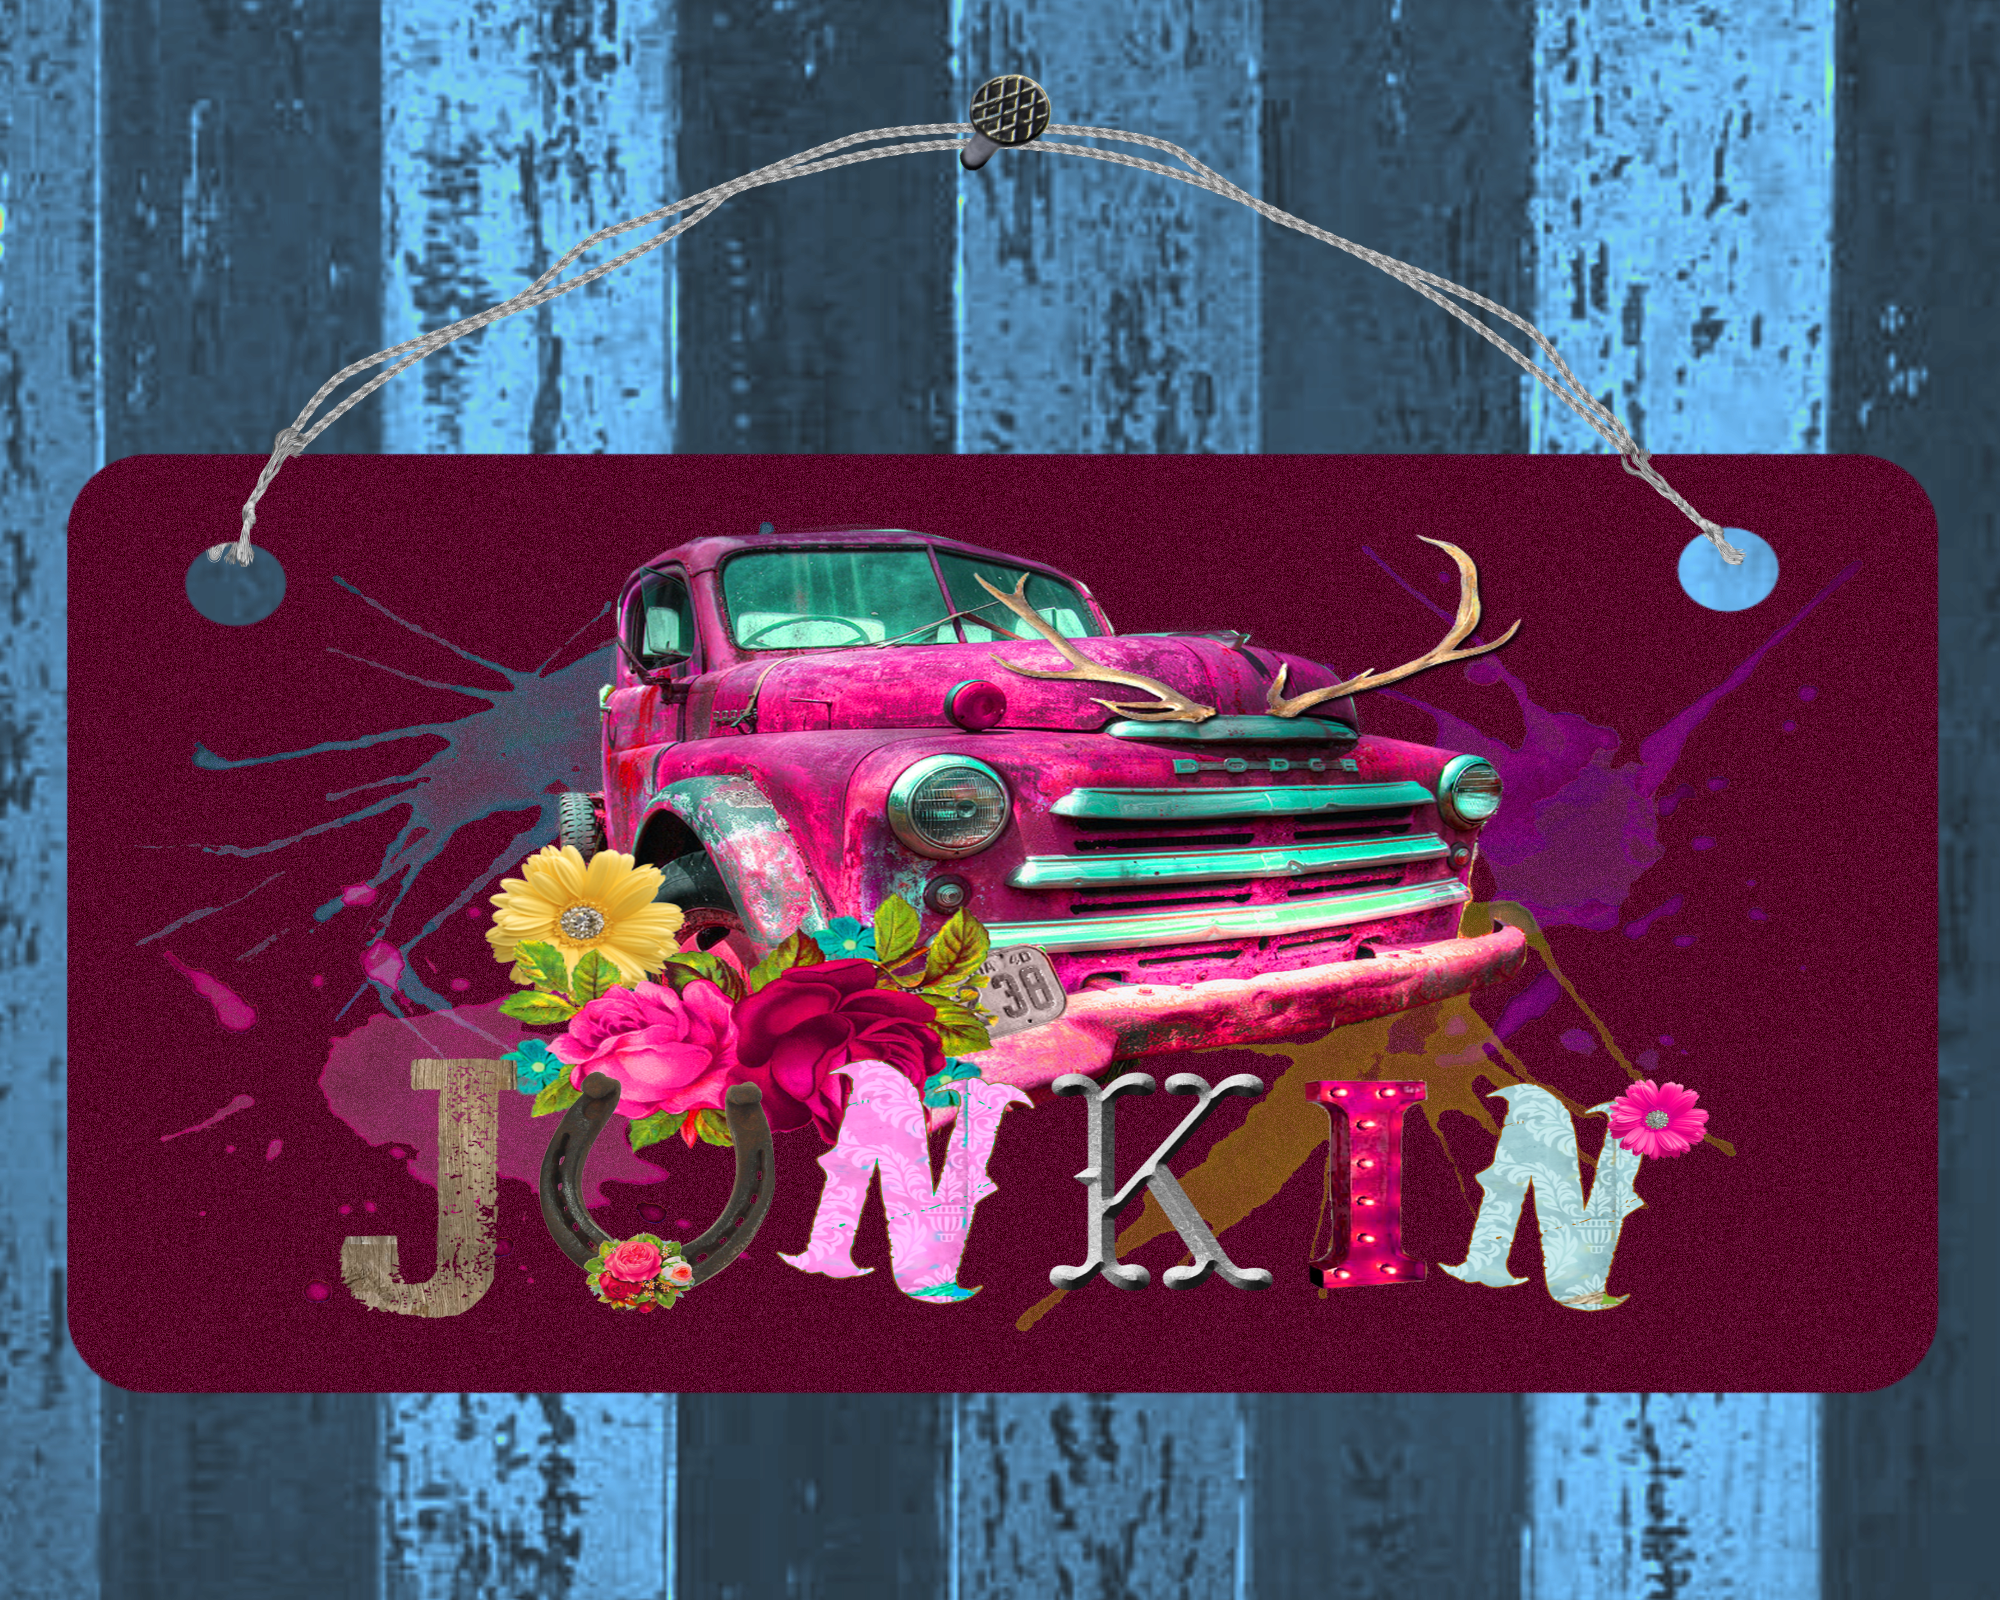 Junkin small hanging sign, wall or door decor  #art #design #gift #giftideas #giftguide #designtimegnc #handmade #gifts #birthday #gifting